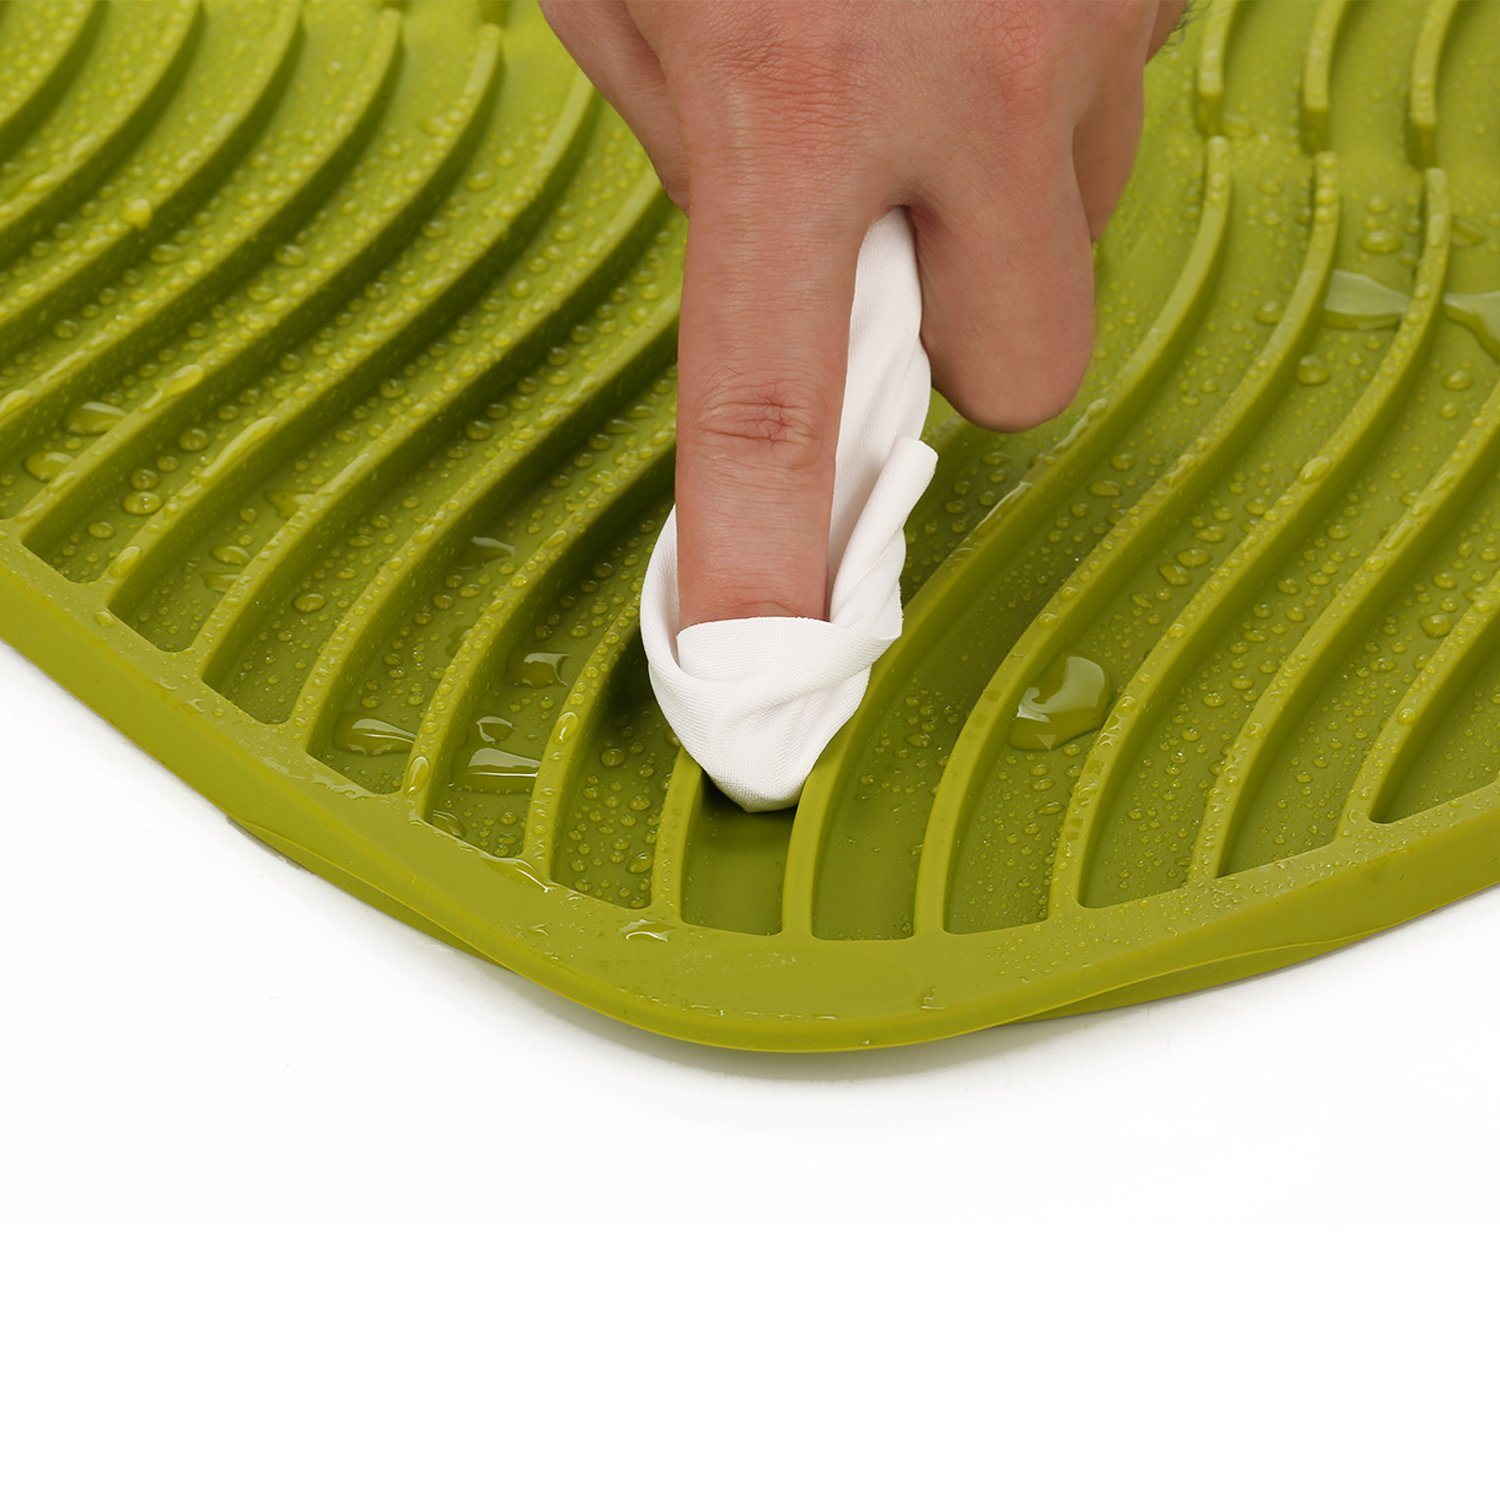 596664e89ad Wholesale Amazon Hot Selling Quality Multi-Function Large Dish Cups  Silicone Drying Mat